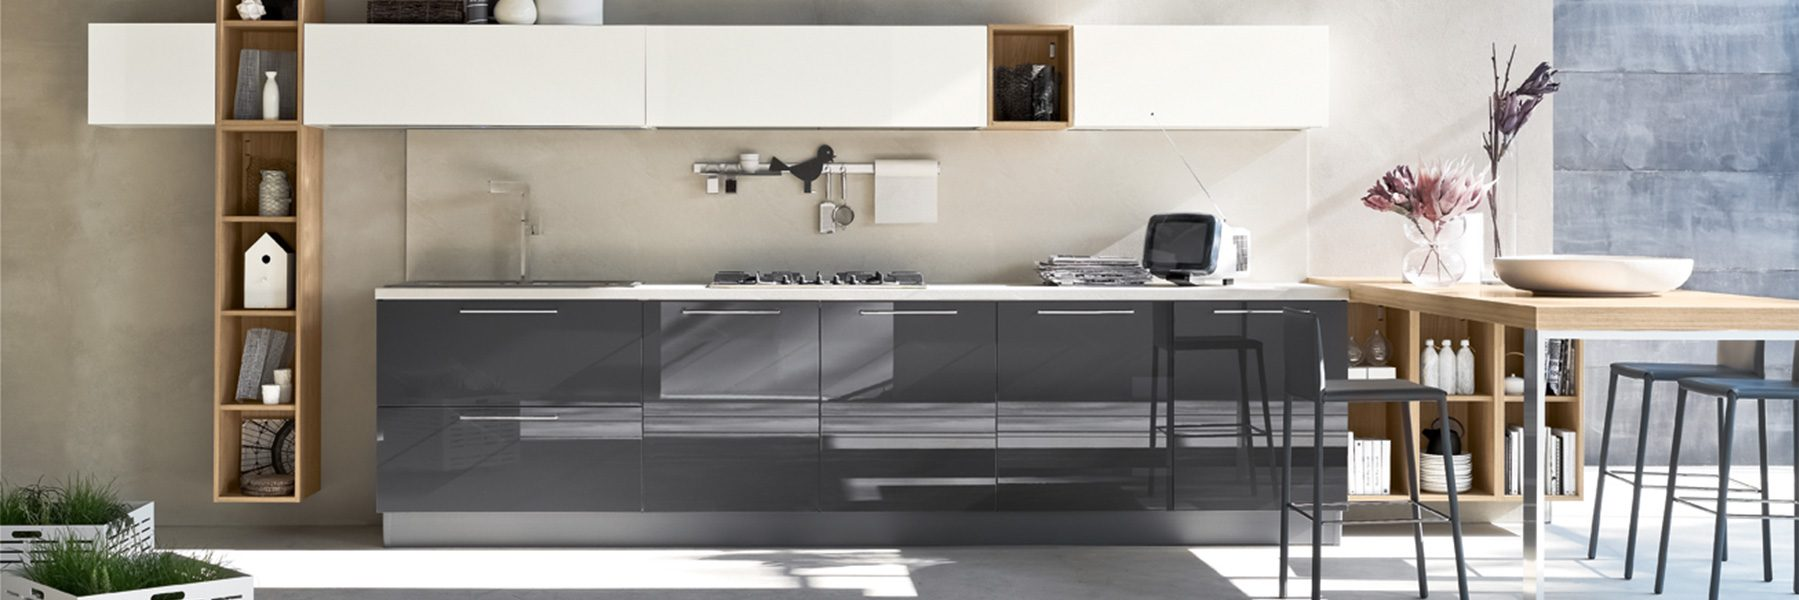 Sydney kitchens - Traditional Kitchens Sydney